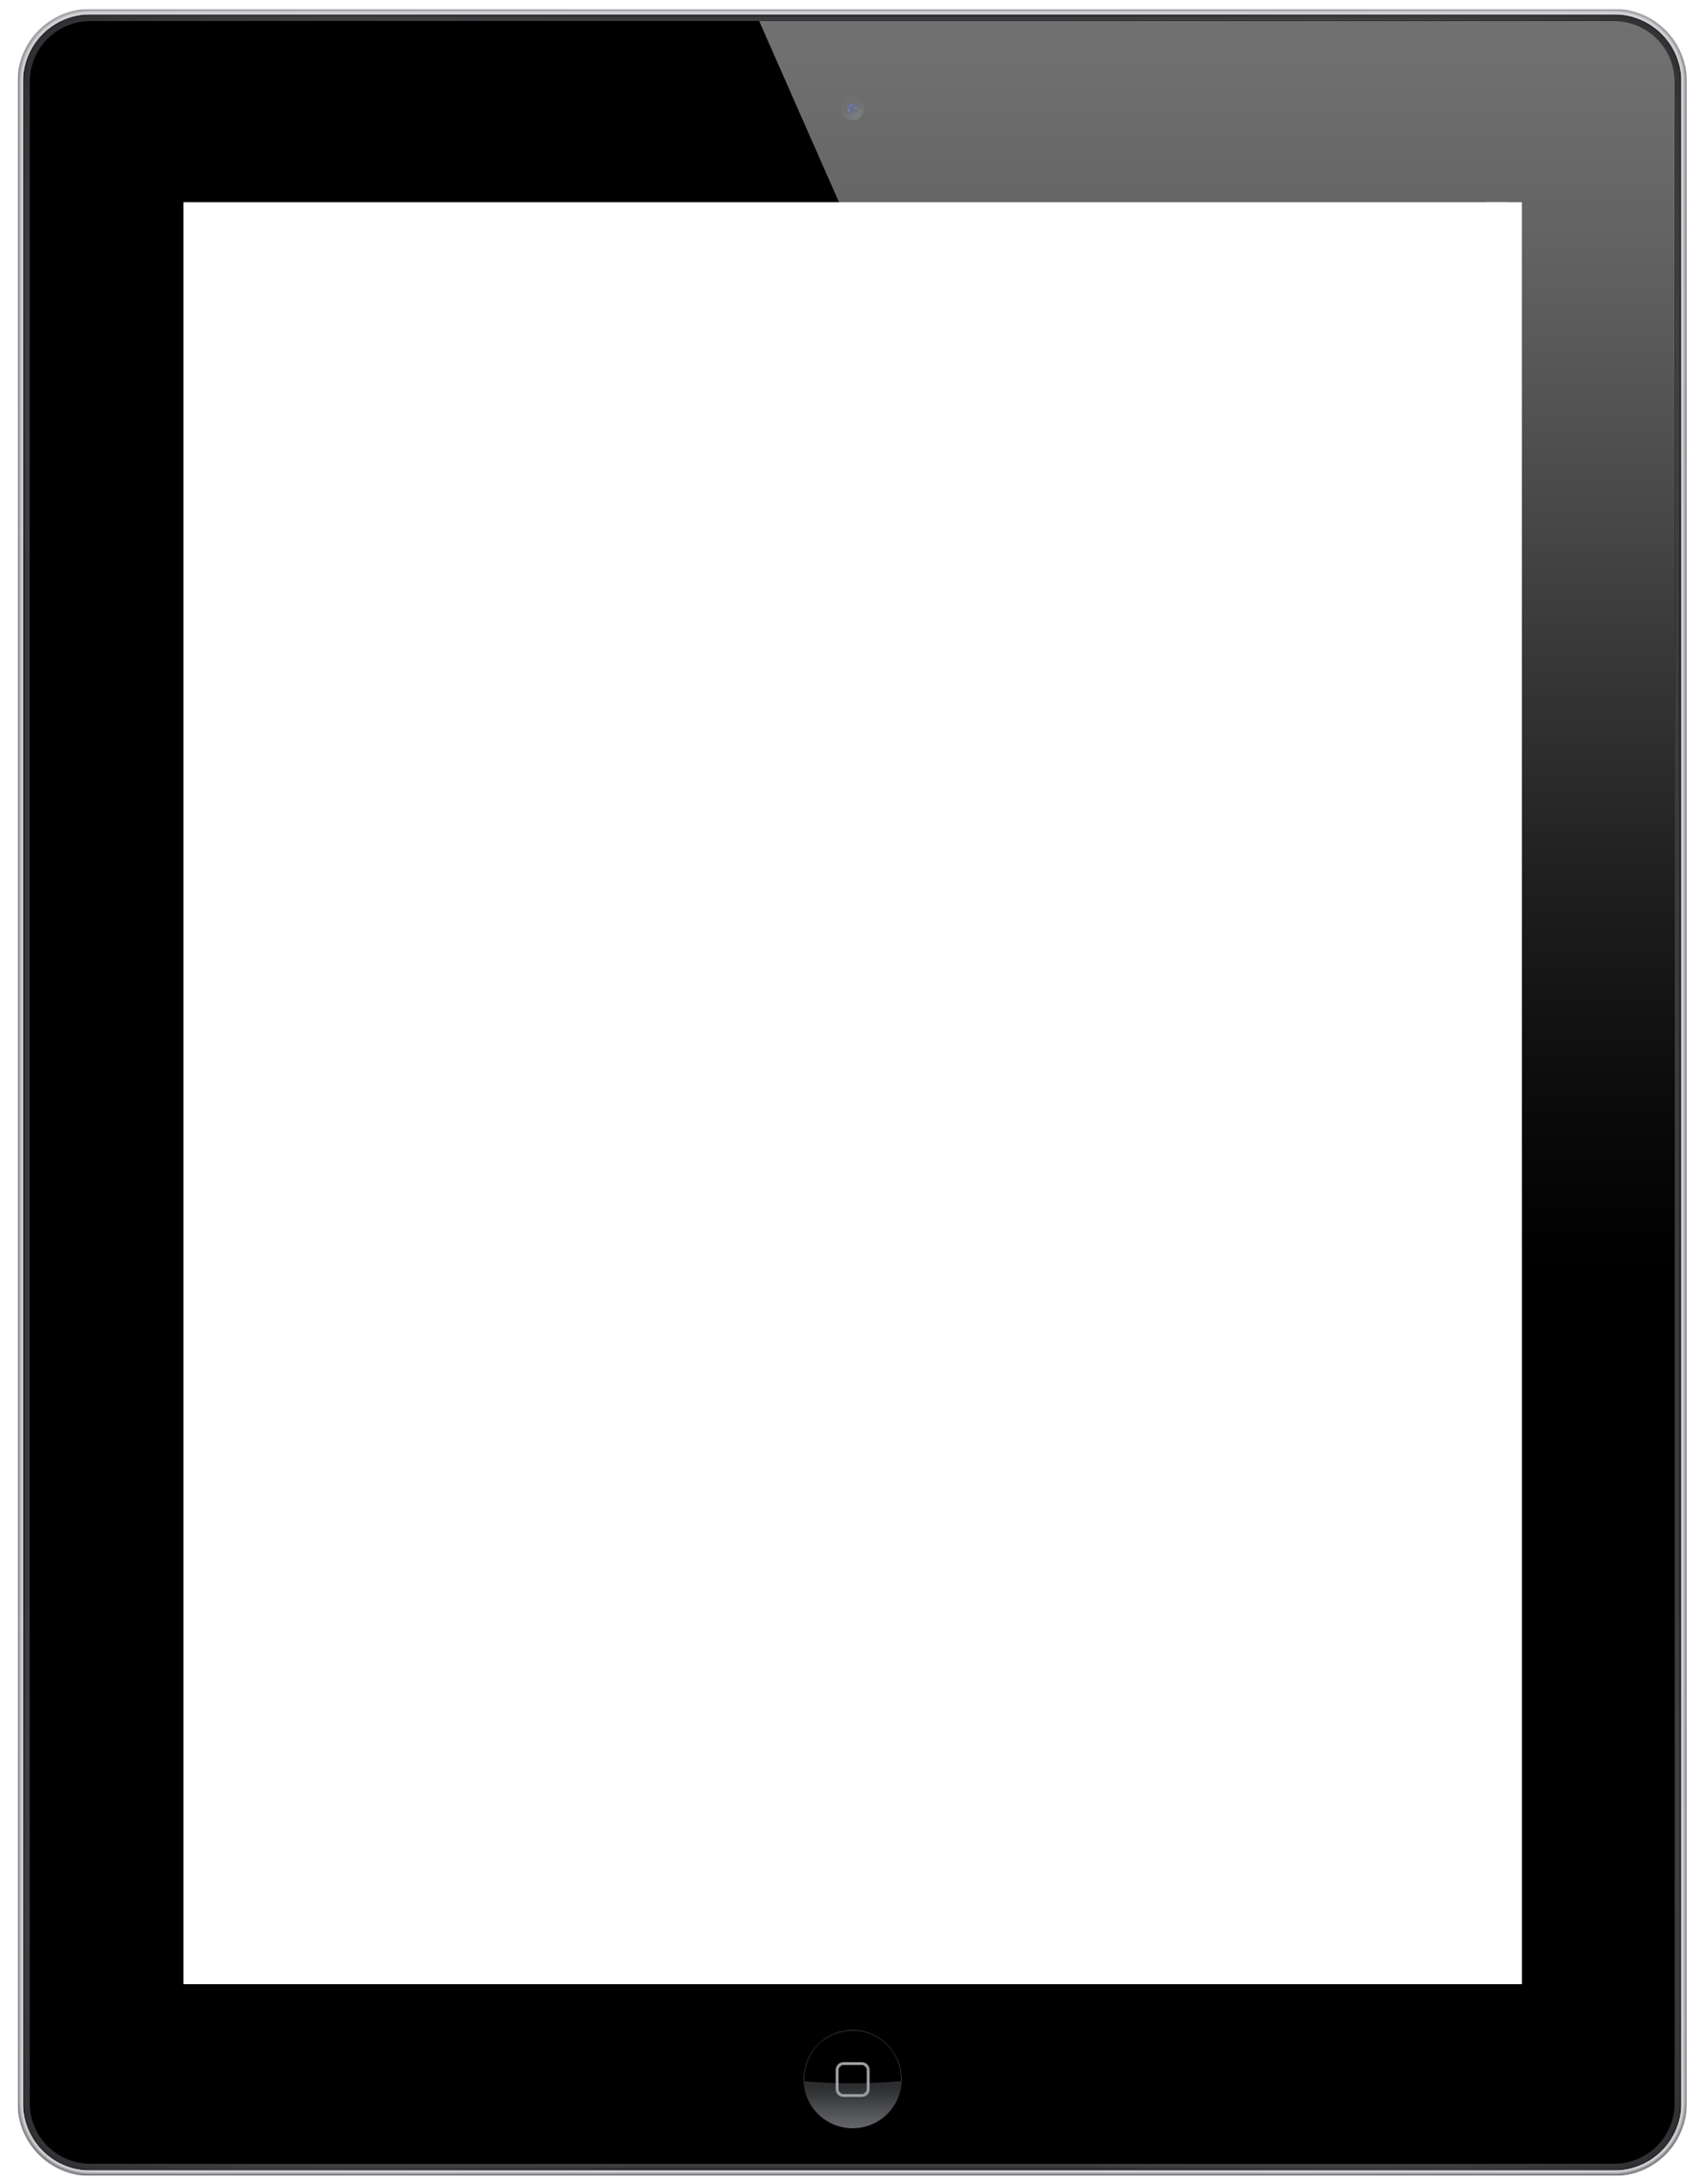 Ipad Tablet PNG Image.